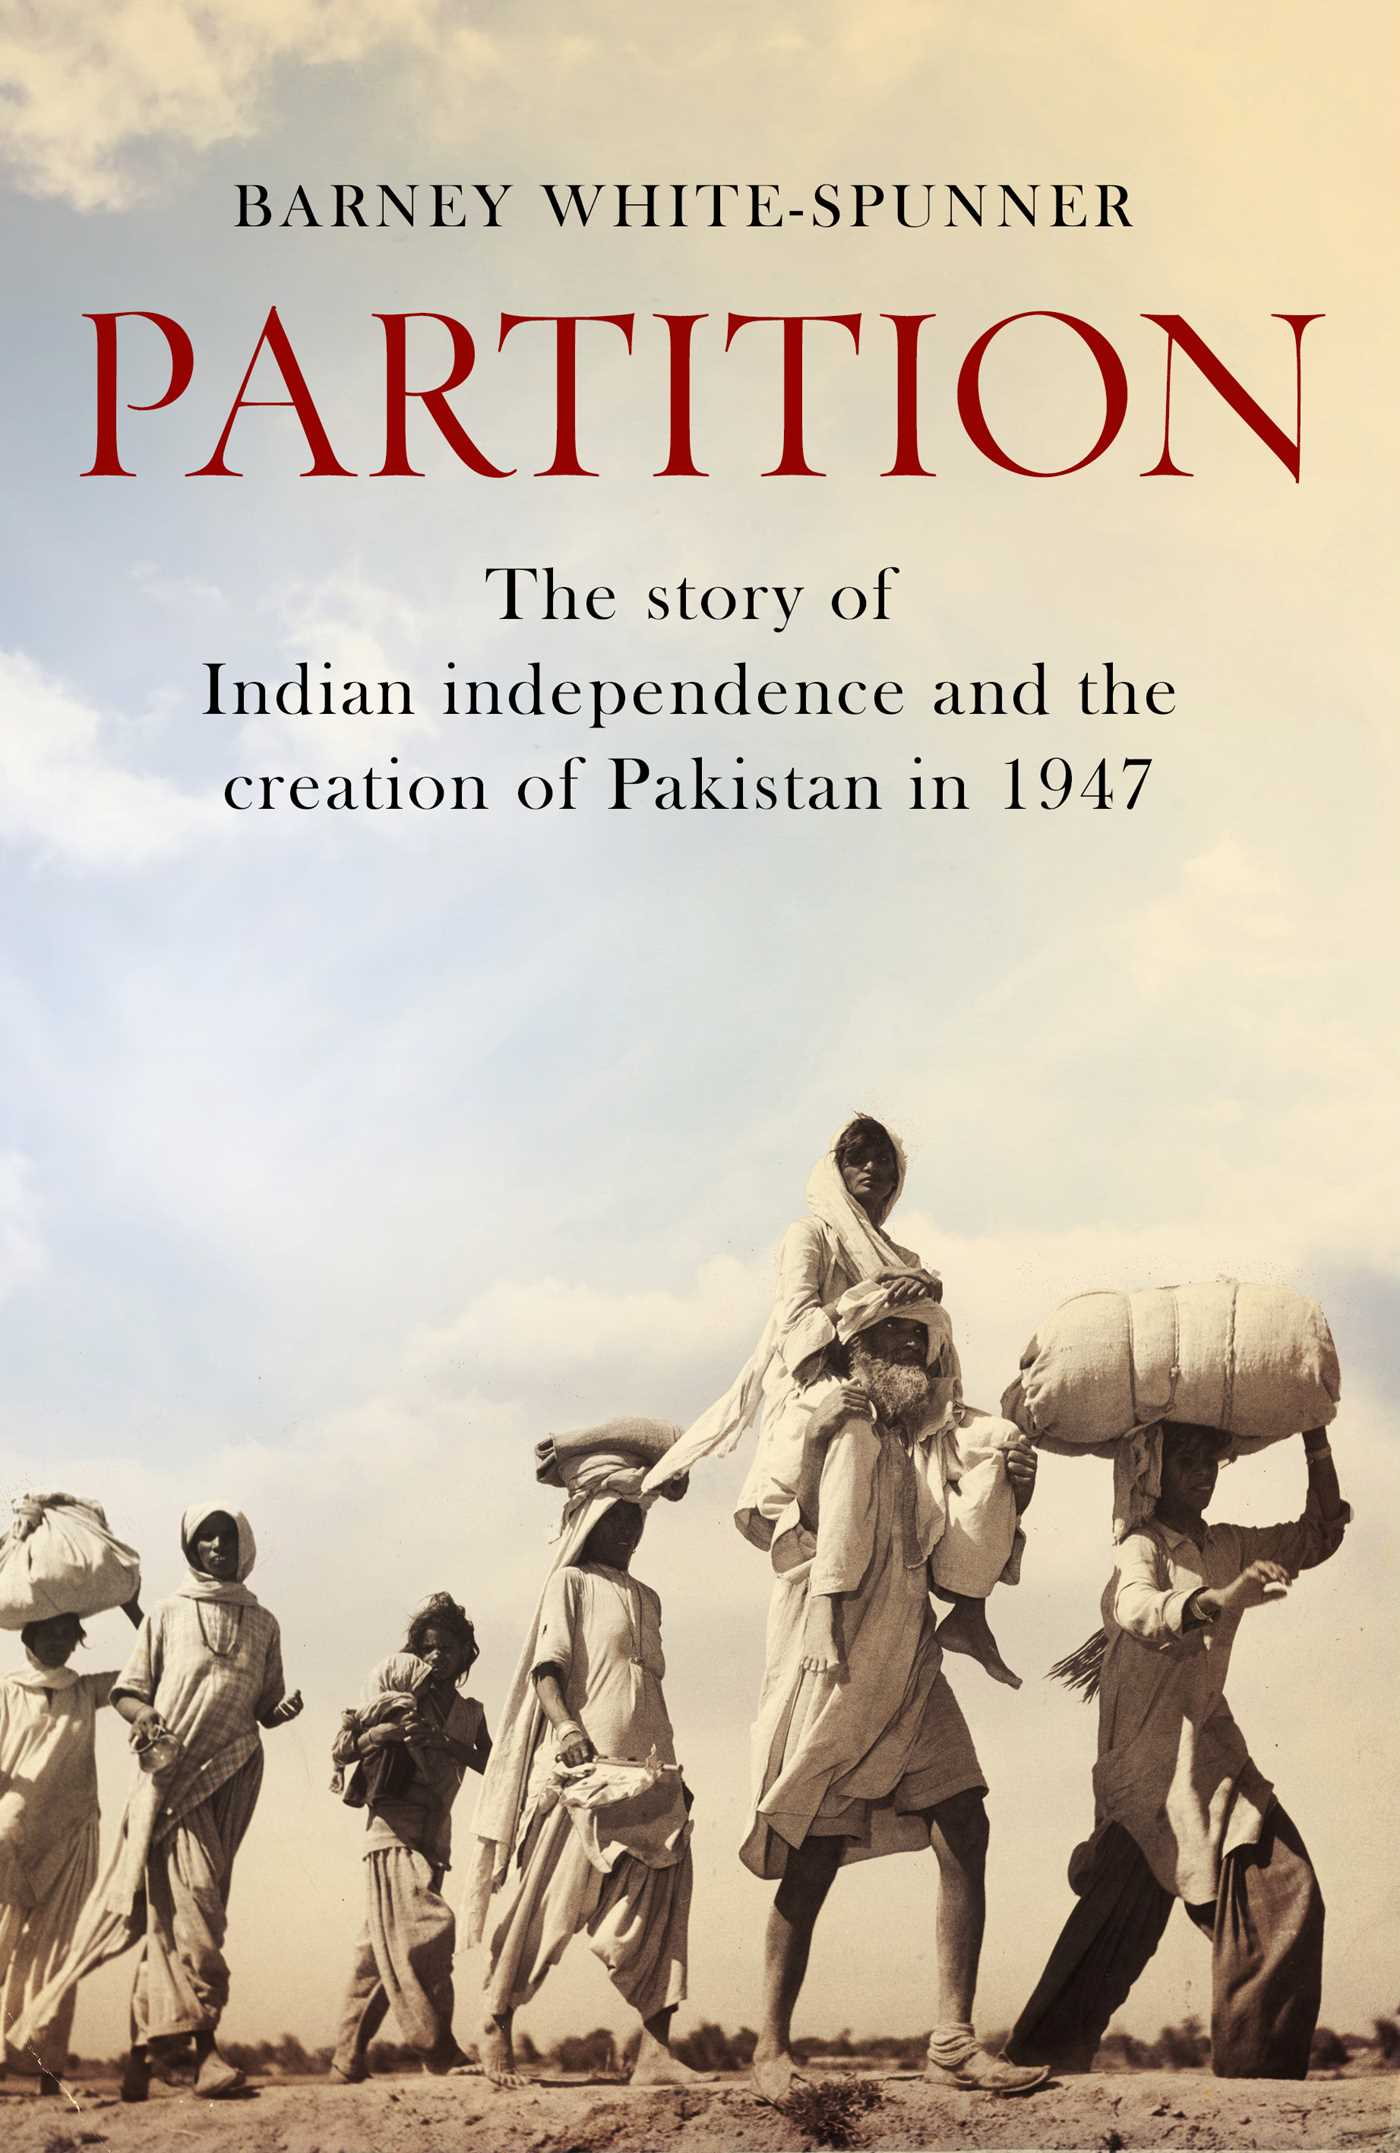 Partition 9781471148002 hr